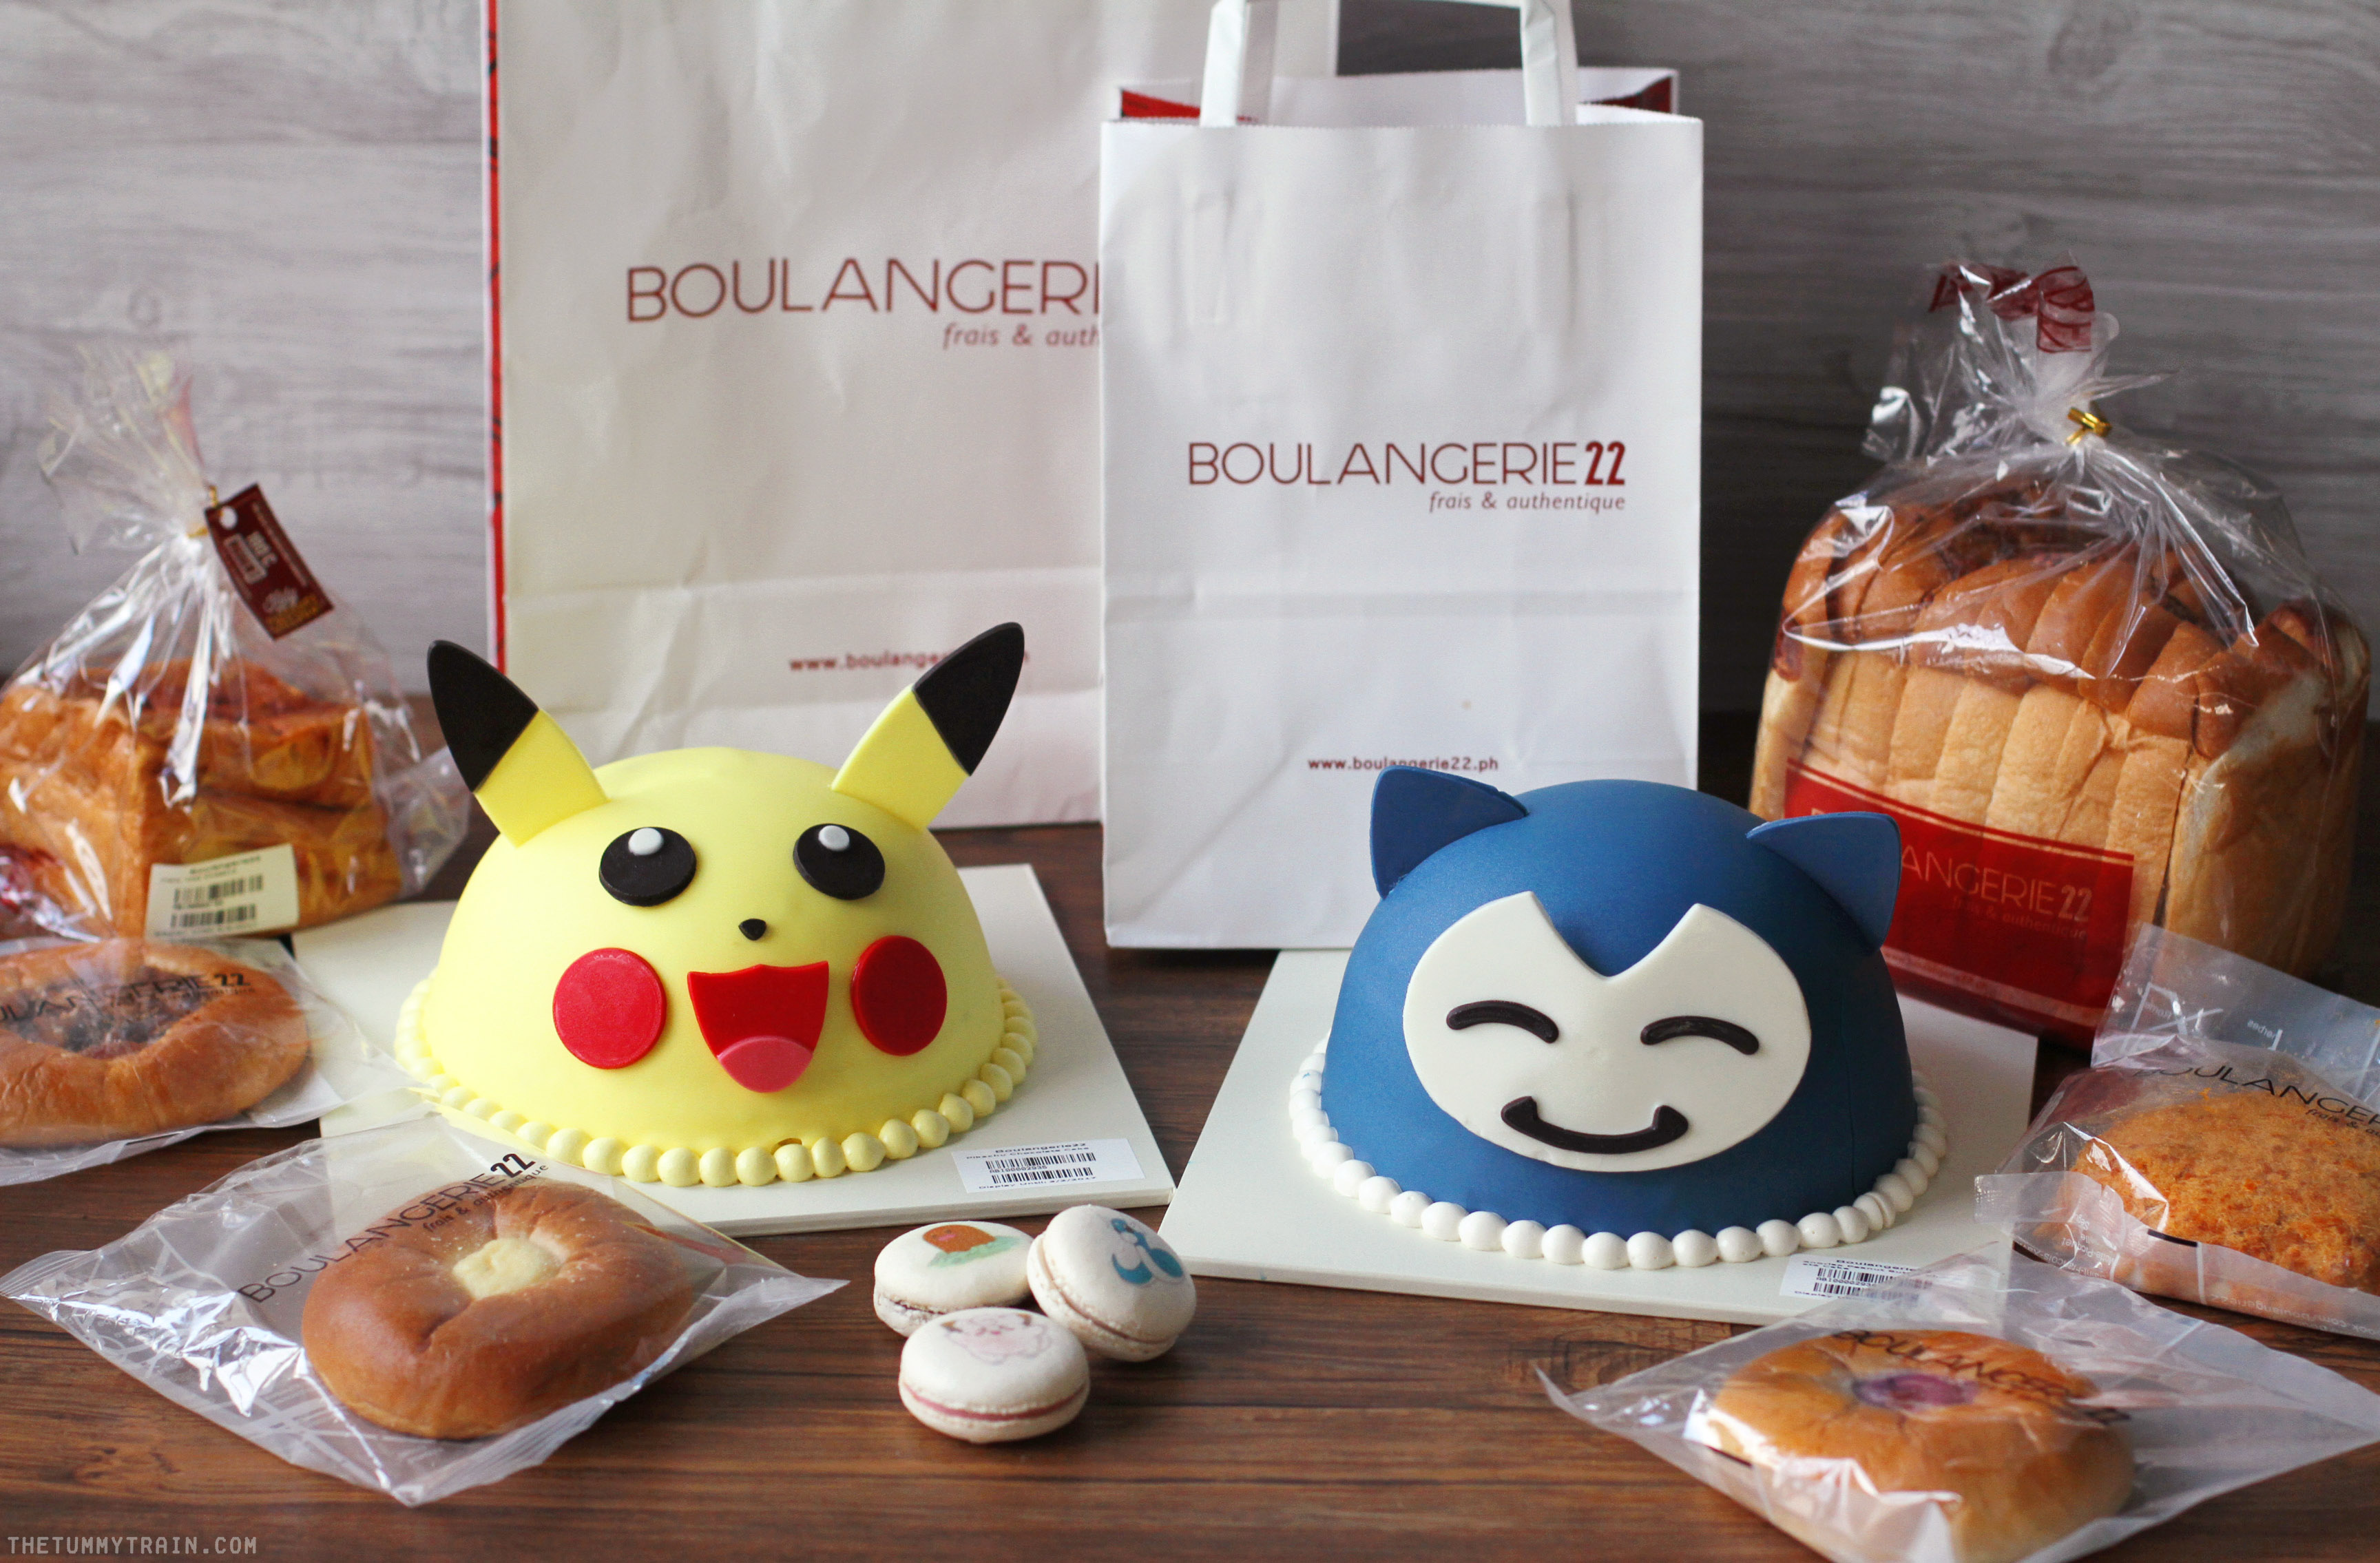 Boulangerie22 Pokemon Cakes 1 - Fuel your Pokemon Go craze with Boulangerie22 Pokemon Cakes